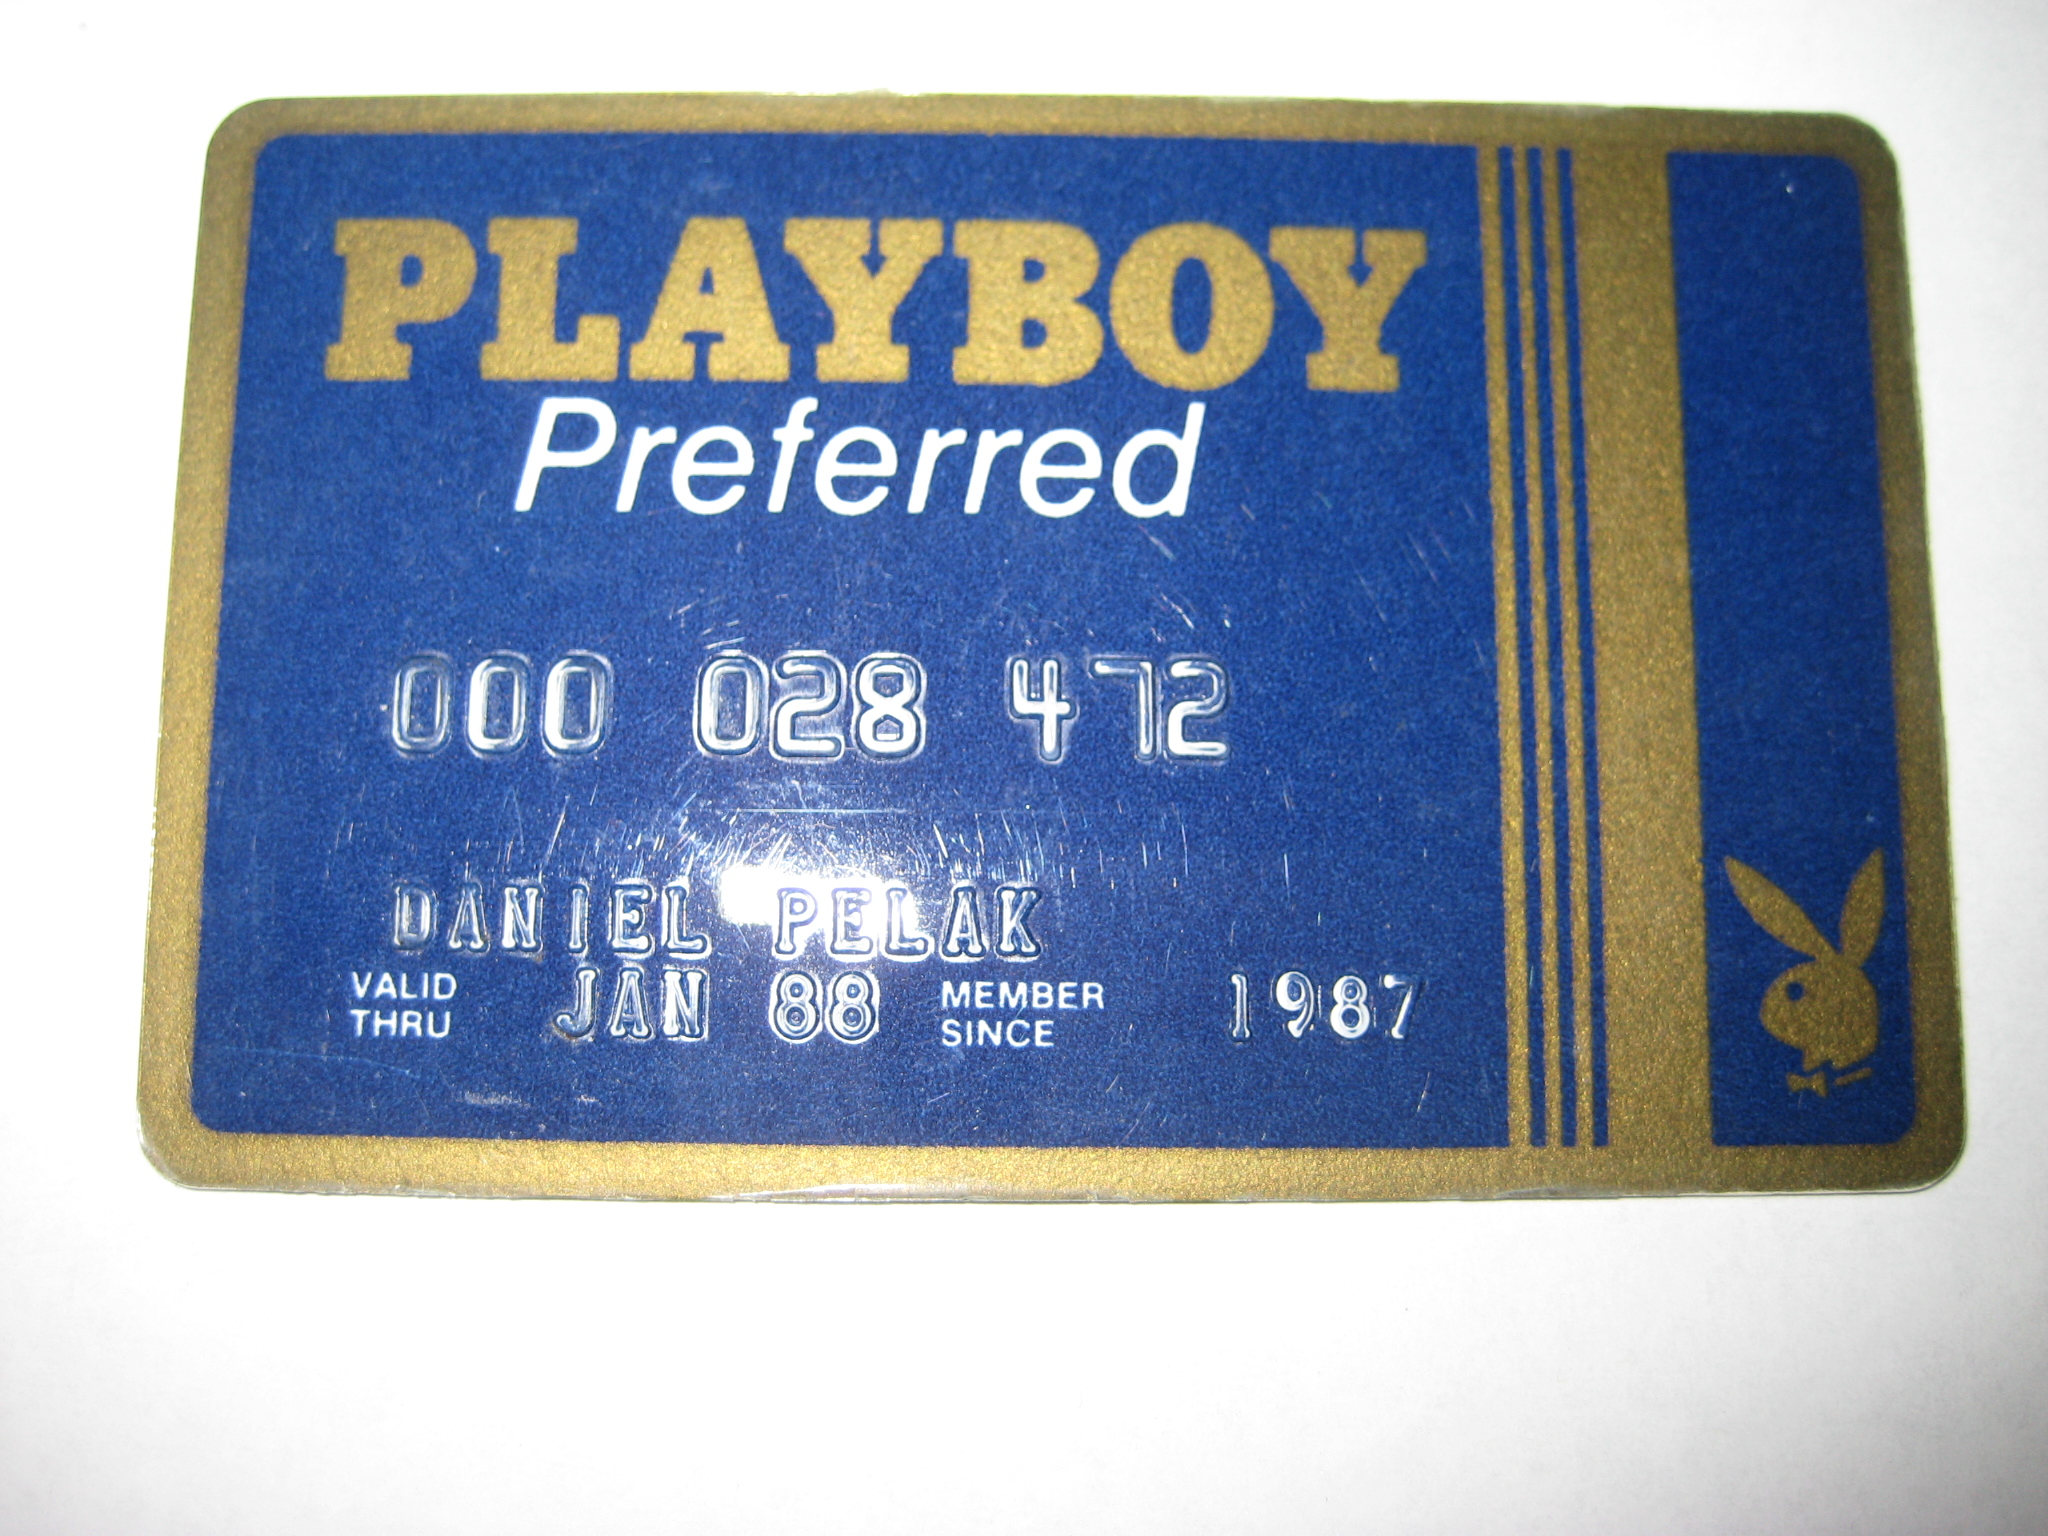 Playboy Preferred Card